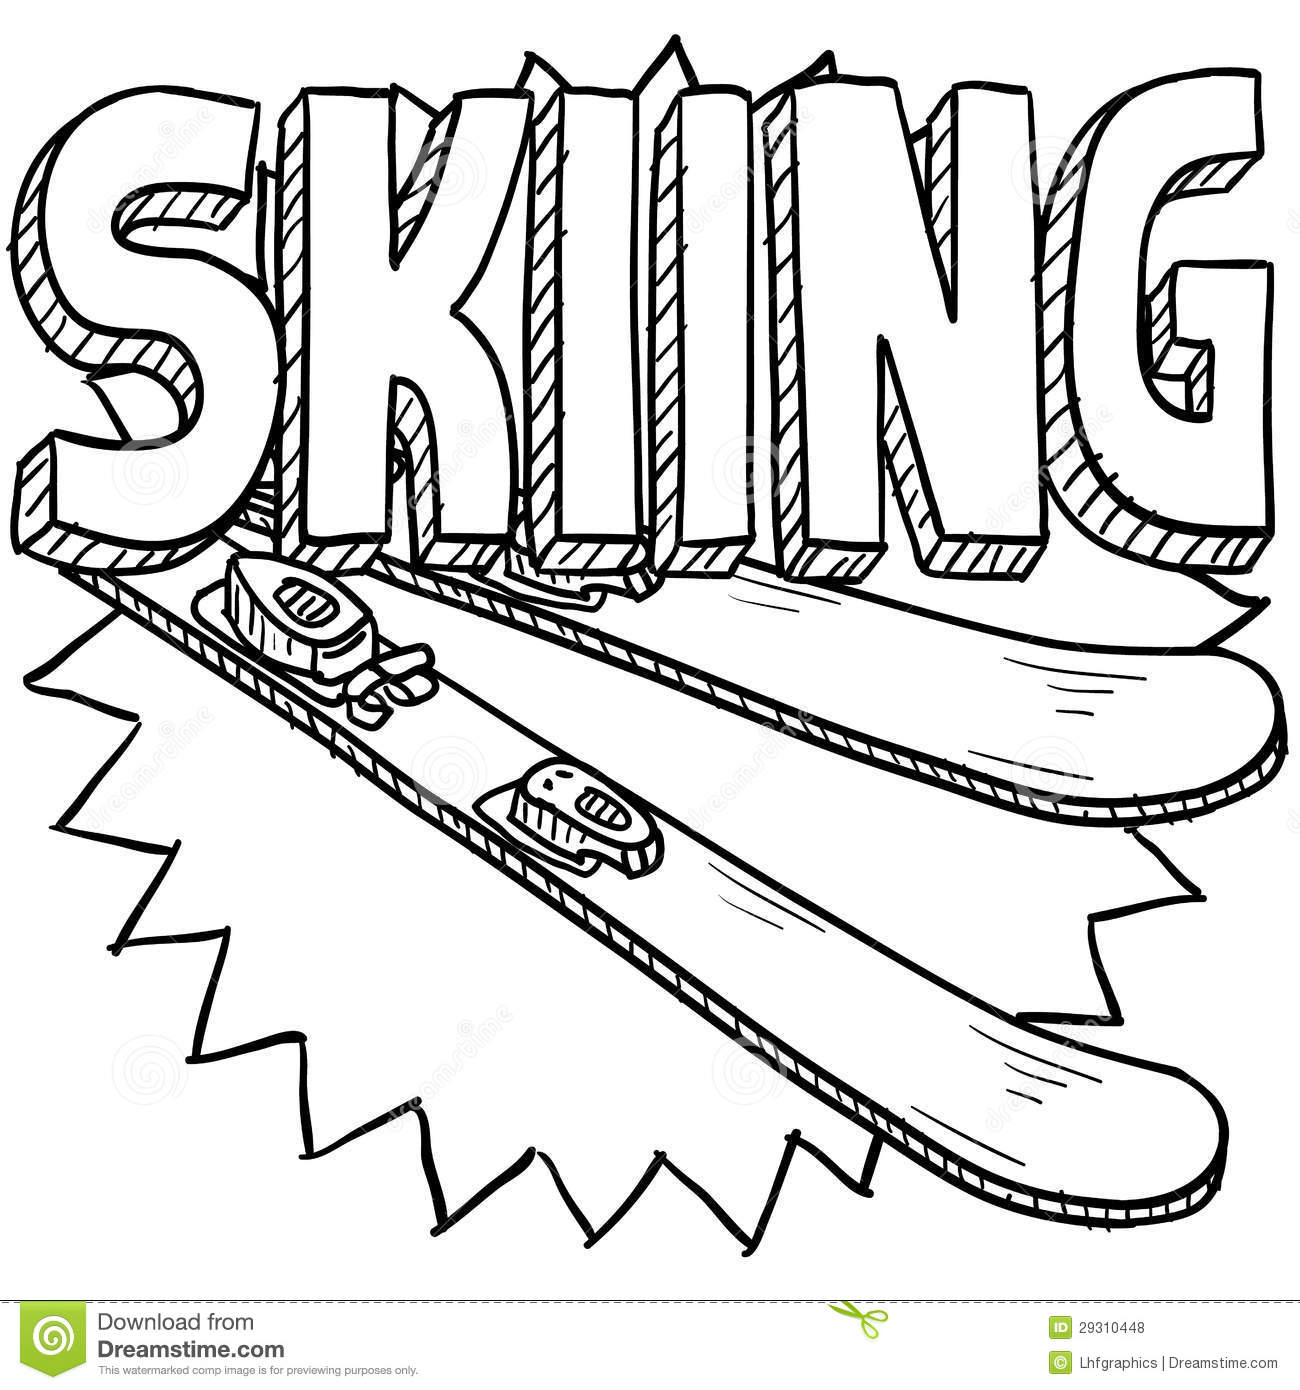 cross country skiing coloring pages - photo#29